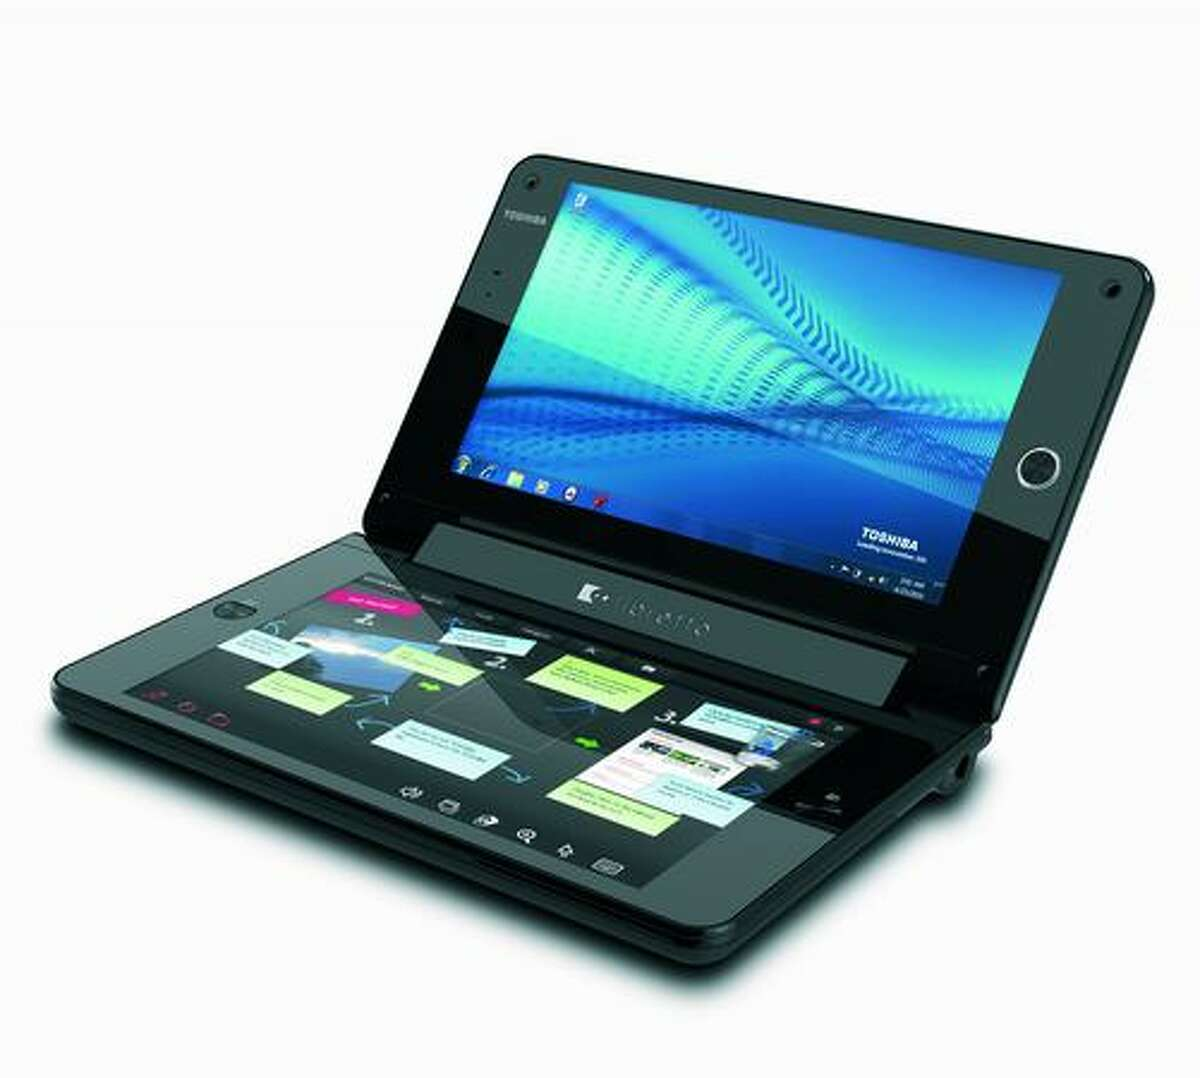 The Toshiba Libretto W100 concept netbook/booklet/tablet PC runs Microsoft Windows 7.